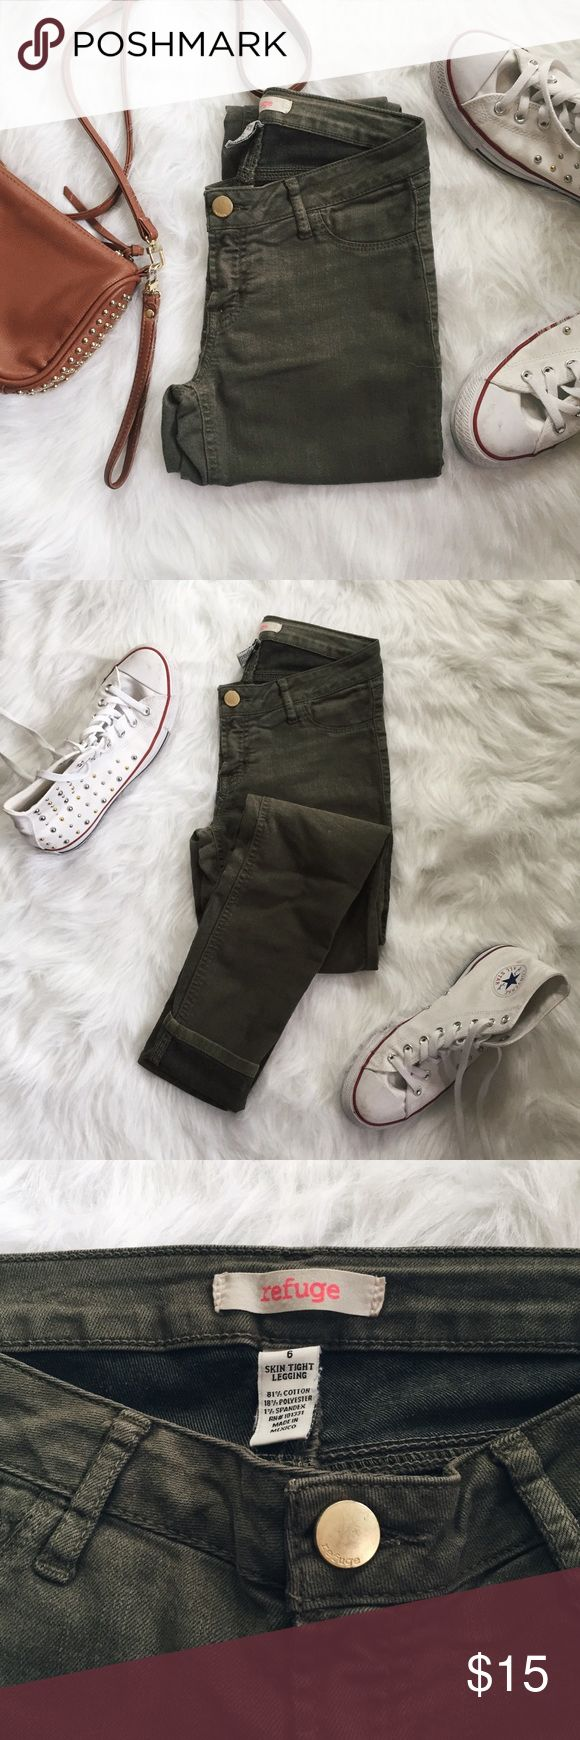 Olive Green Mid-Rise Skinny Jeans ▪️Product Description▪️ ▫️The trendy olive green color meets the classic skinny jean ▫️No rips for a clean and versatile look- casual or dressy  ▫️Brand listed, originally purchased from Charlotte Rousse   ▪️Fit: Runs small- suitable to 26 inch waist, low/medium rise, skinny and hugs curves  ▪️Condition: Gently used, pull in the threading (see photos) ▪️Measurements: Approx/Laying Flat  ▫️Waist- 13 inches  ▫️Inseam- 28 inches refuge Jeans Skinny